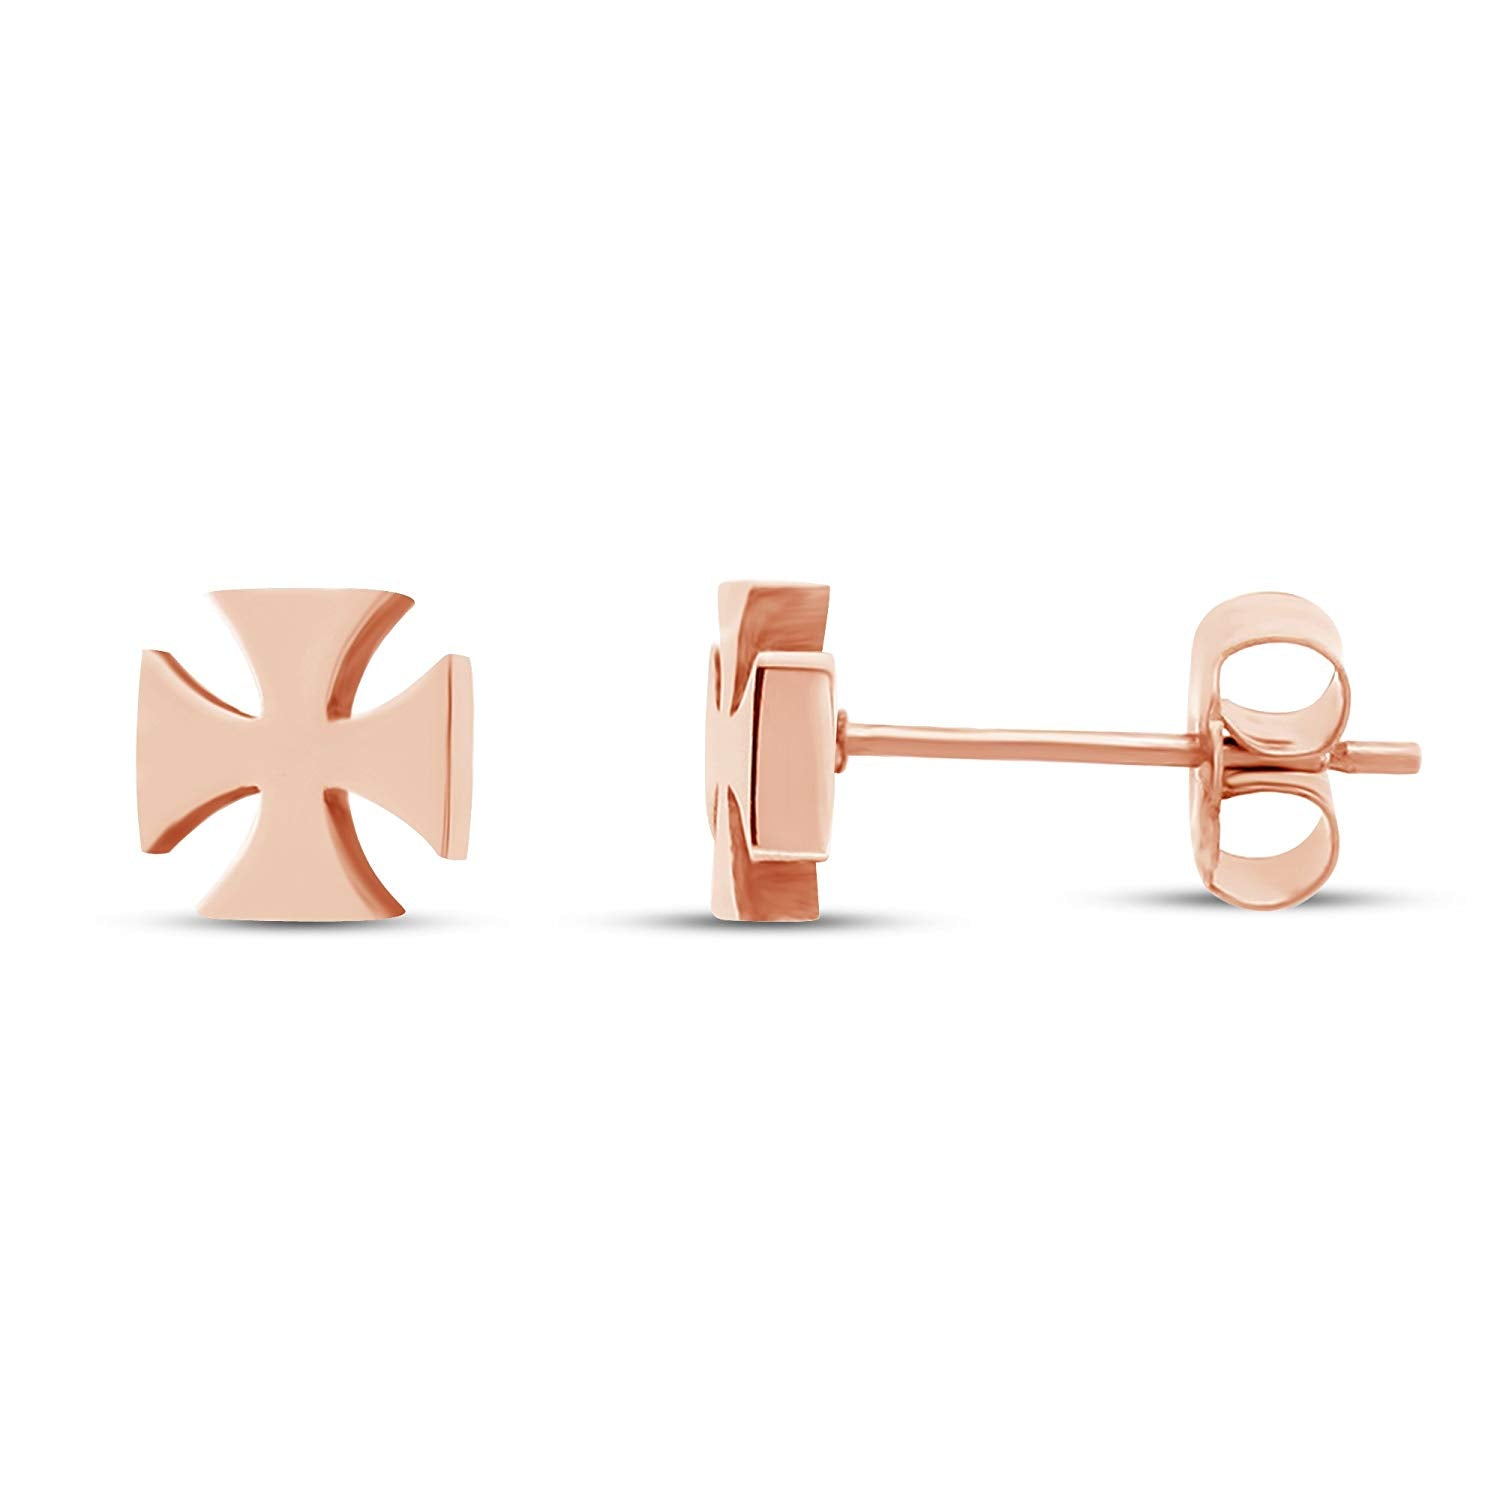 acc931f07 atjewels Cross Stud Earrings in 14k Rose Gold Plated on 925 Sterling Silver  For Women's MOTHER'S DAY SPECIAL OFFER